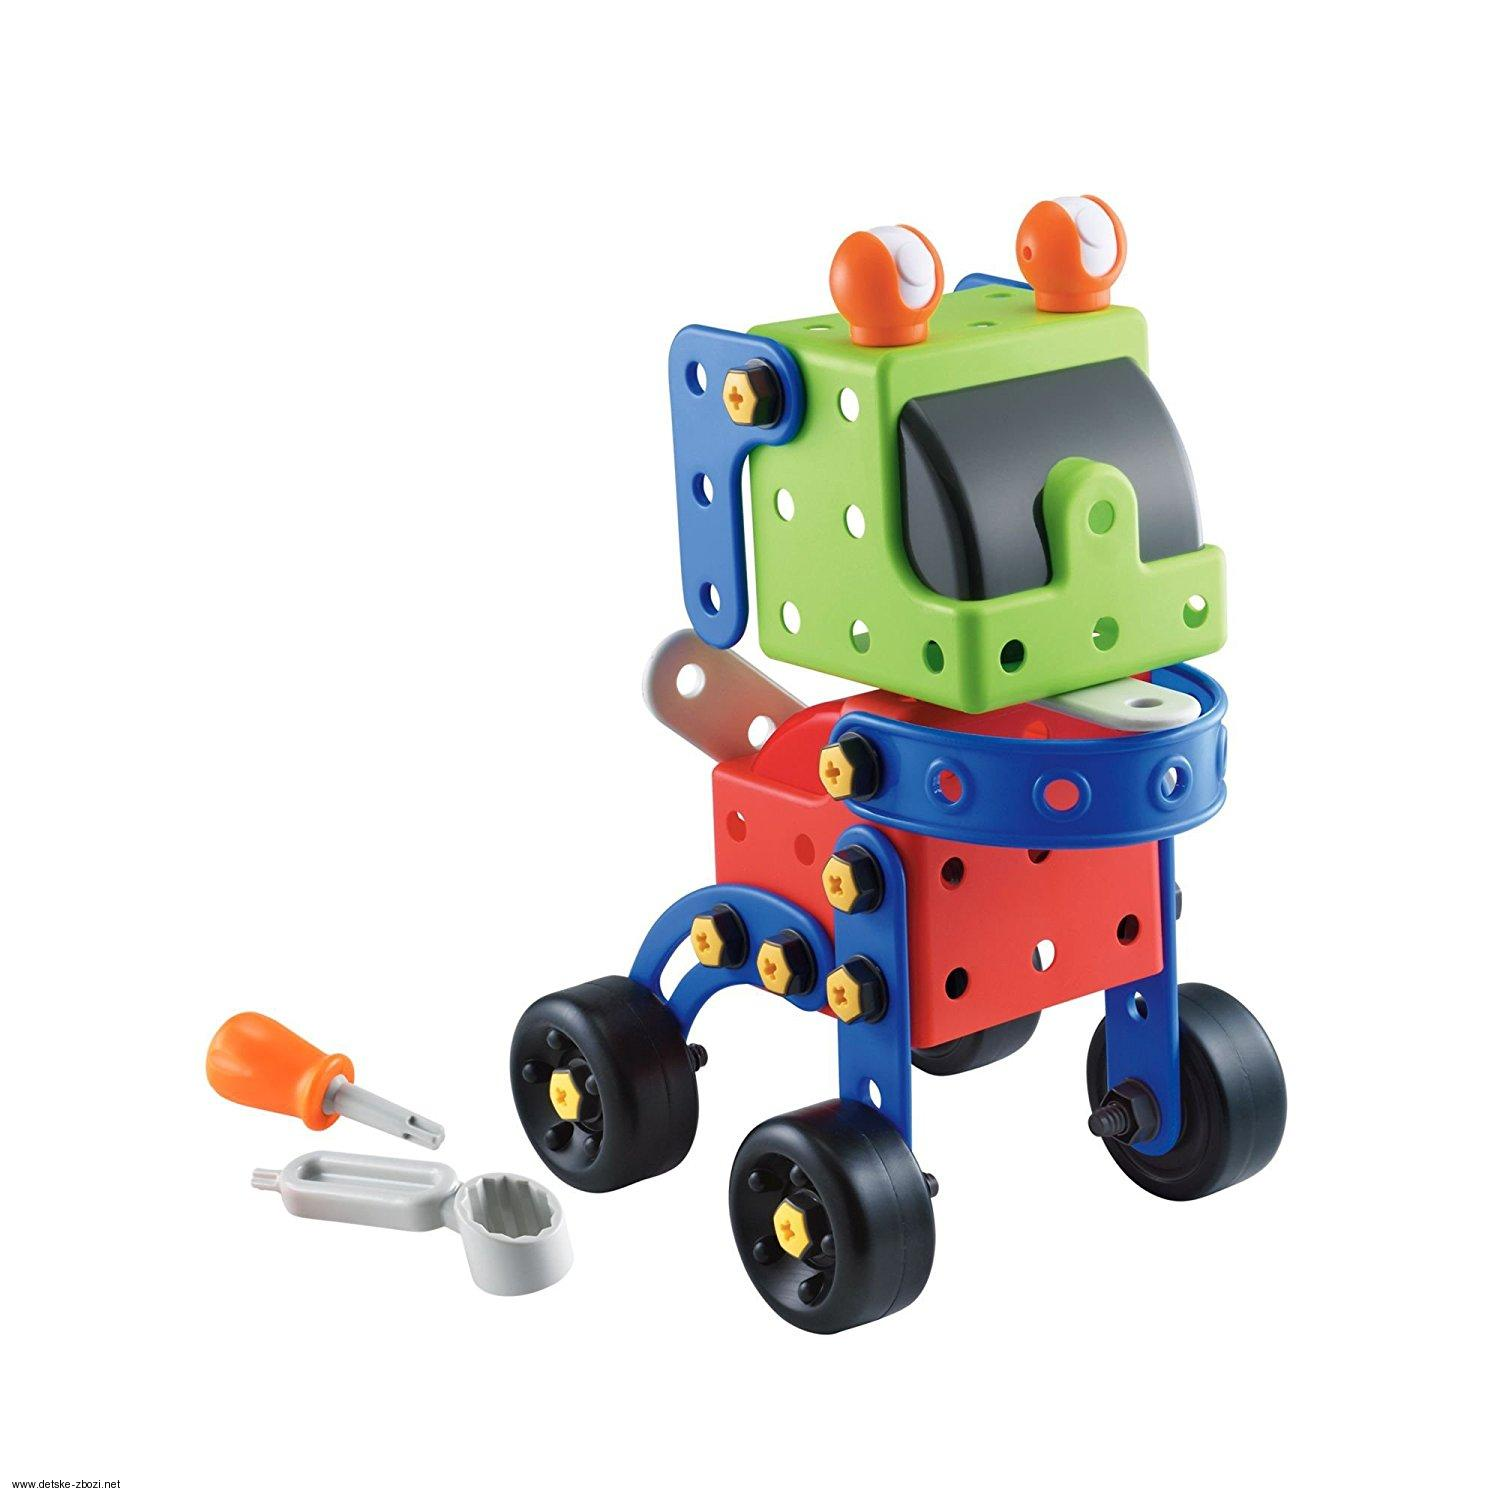 Early Learning Centre stavebnice Building starting kit 80 kusů